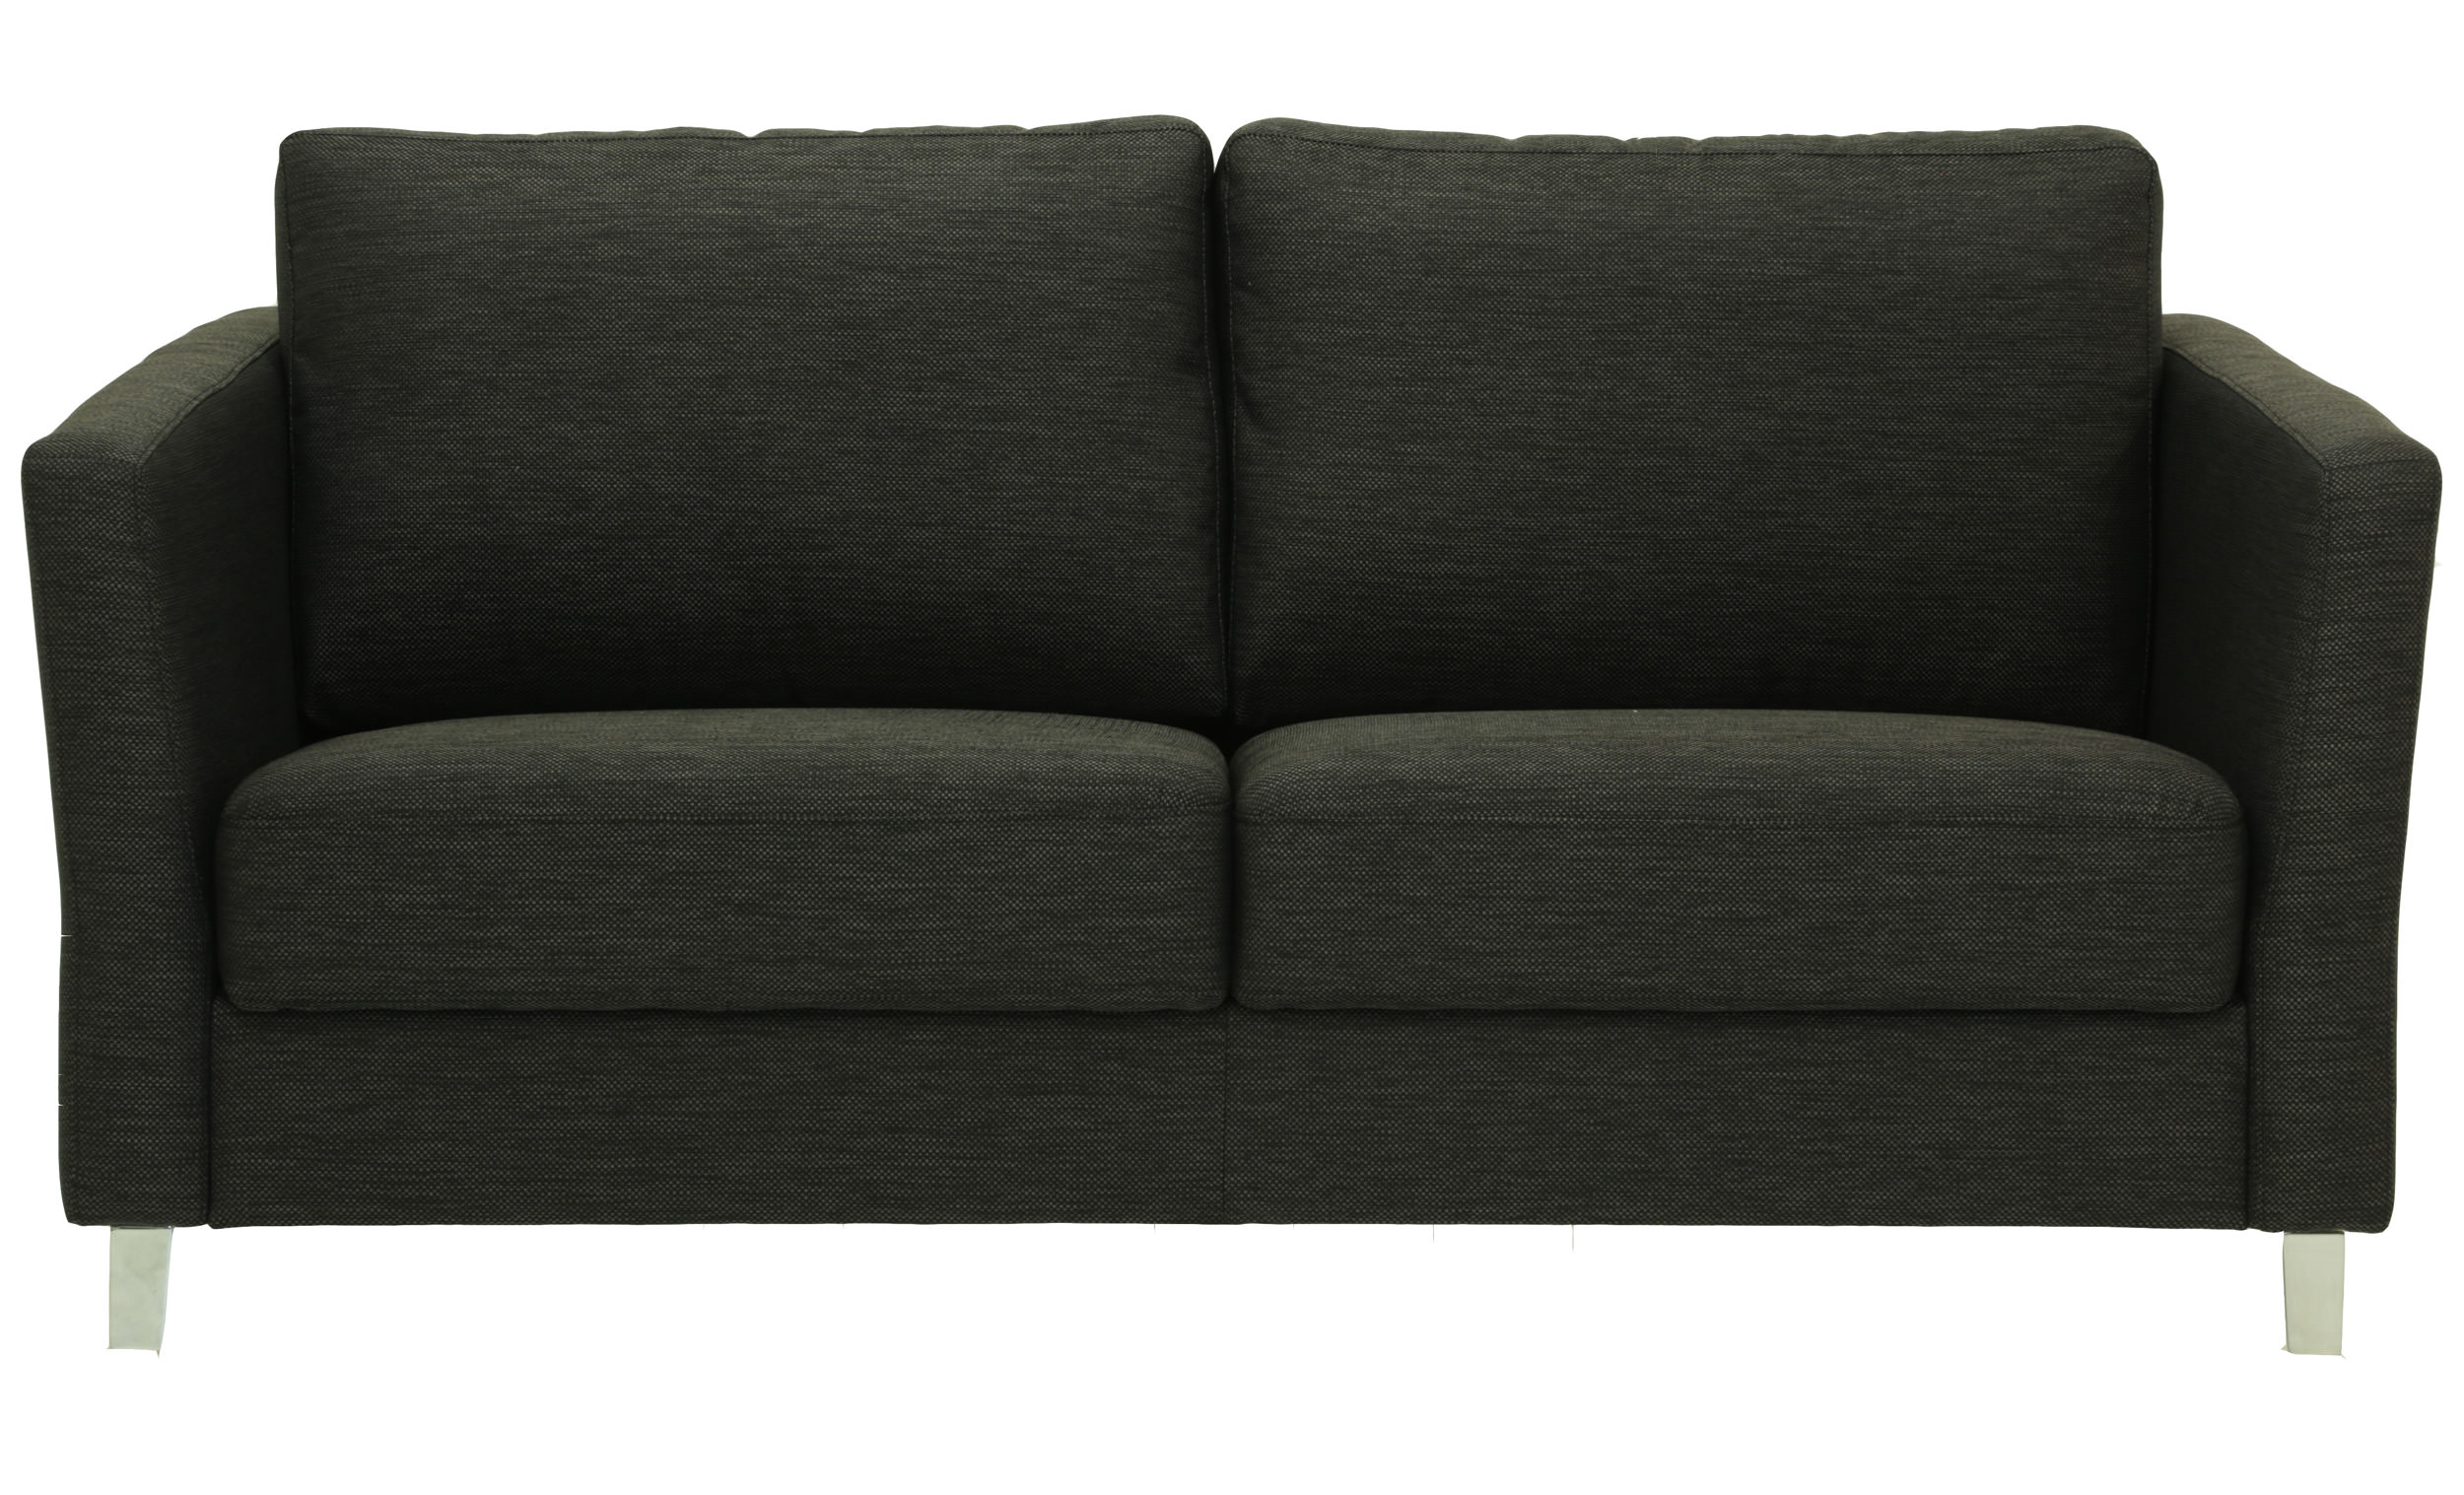 Excellent Luonto Monika Sofa Sleeper Evergreenethics Interior Chair Design Evergreenethicsorg